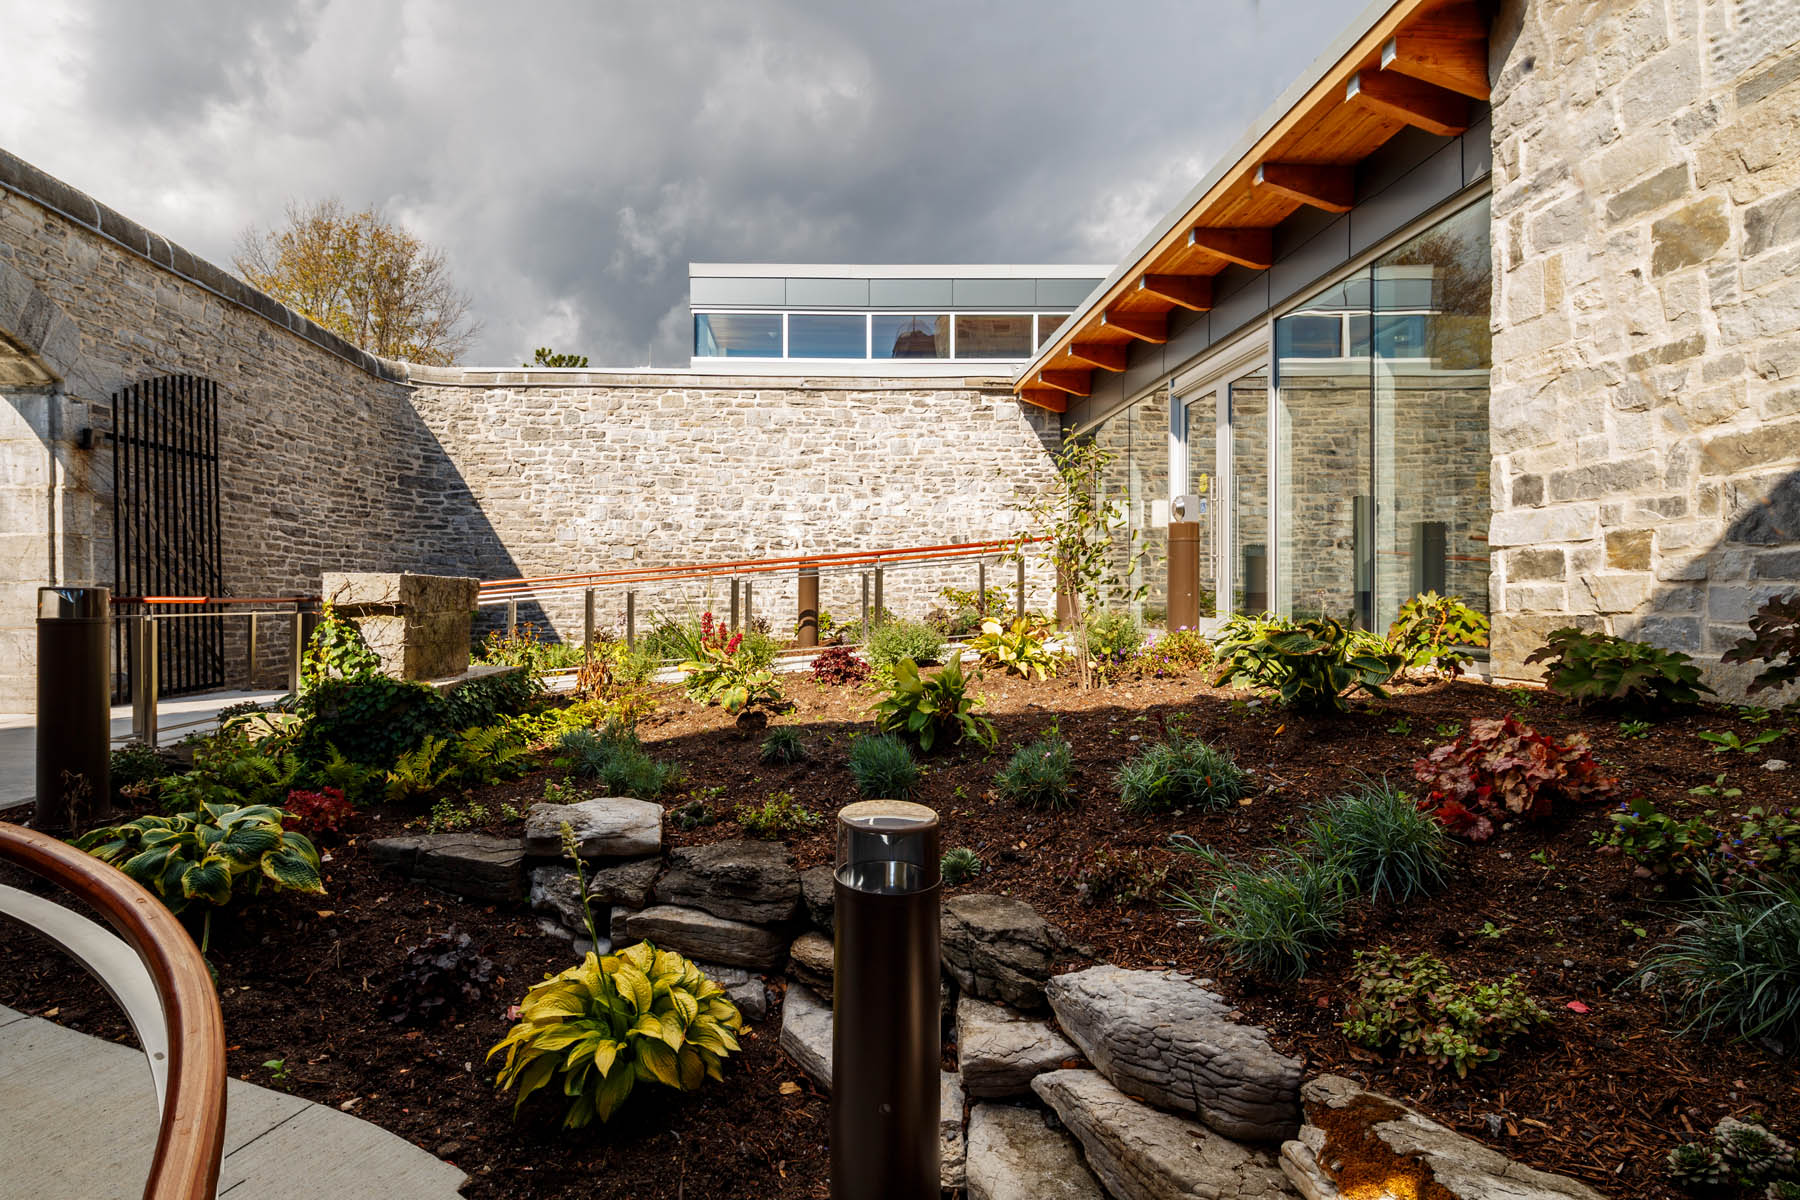 Stone walled garden and glazed entrance with wood cantilever roof, and clerestory windows of addition and stormy skies in background